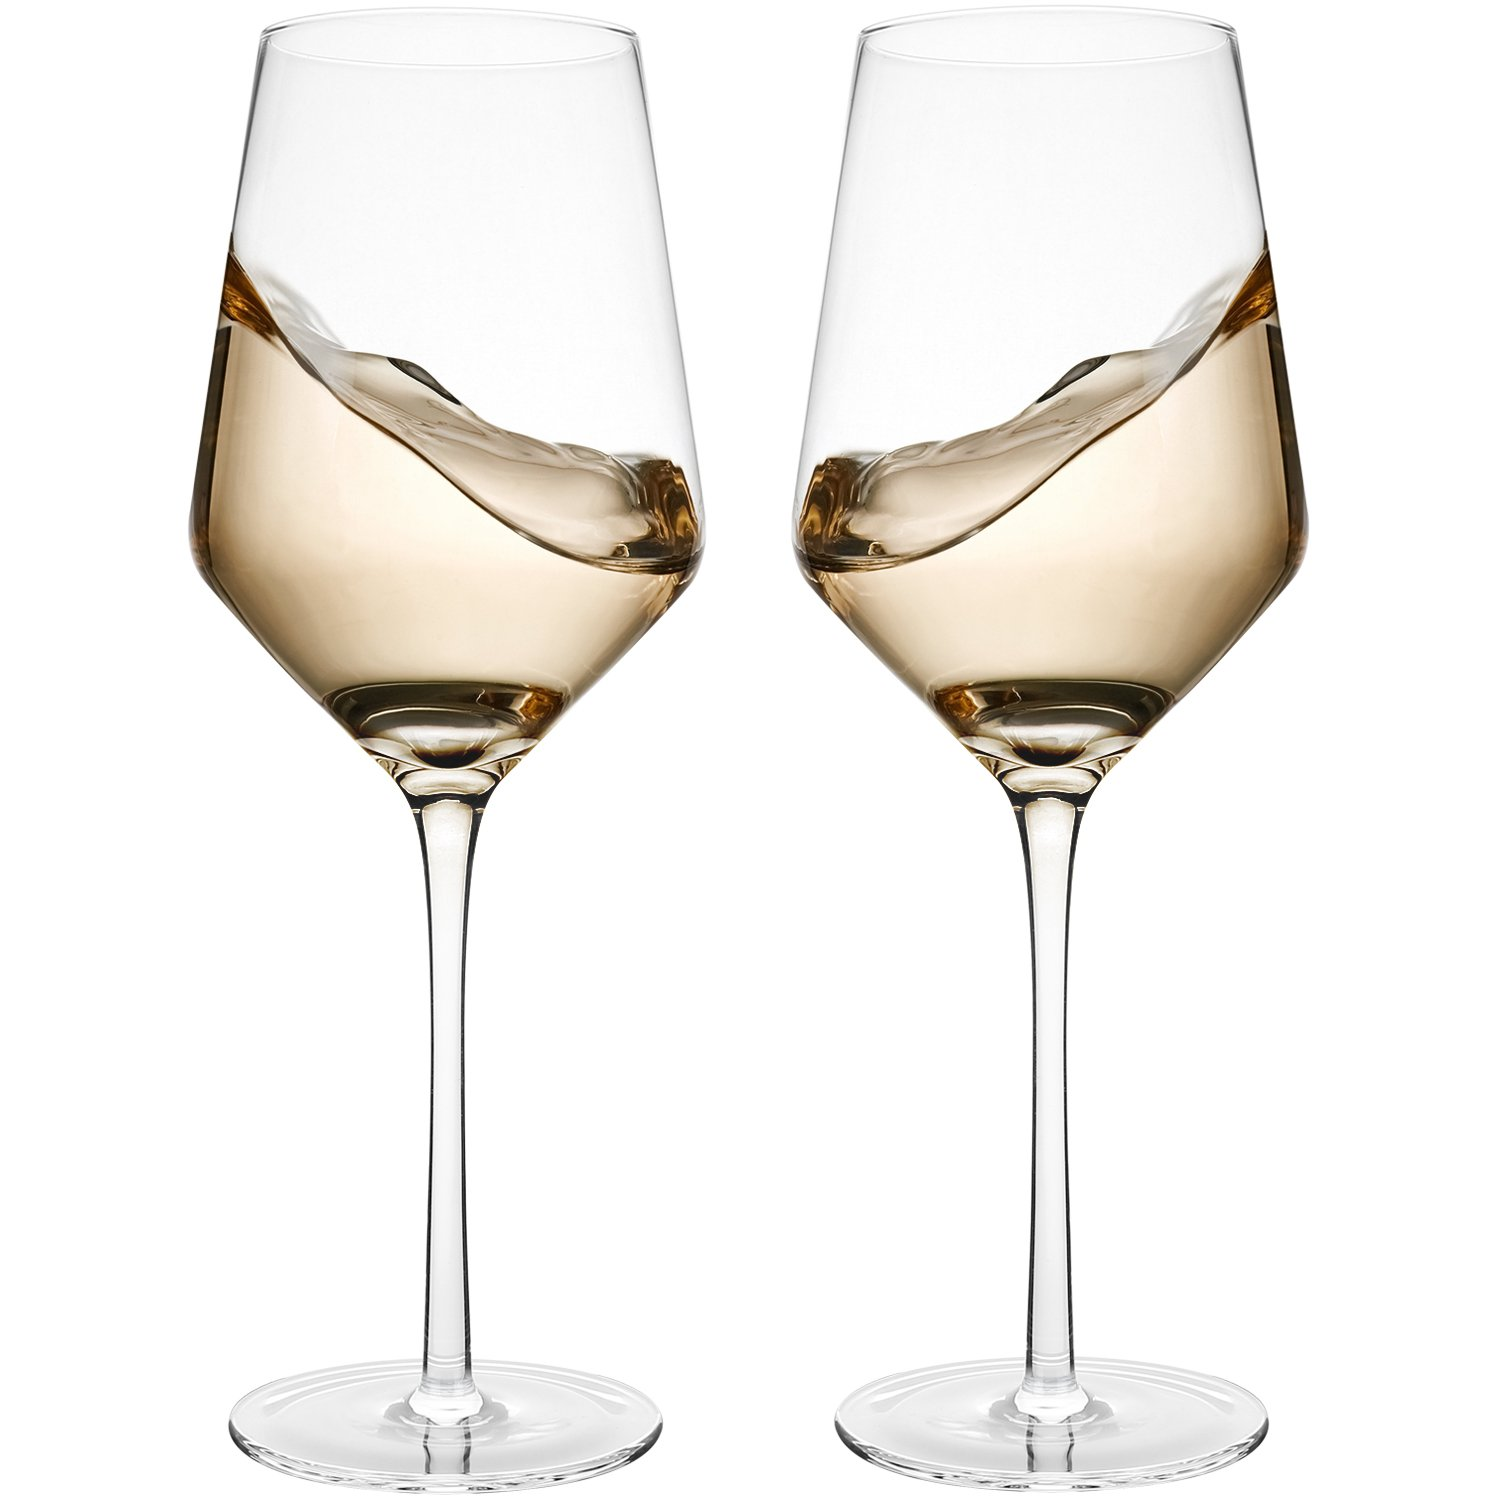 Hand Blown Crystal Wine Glasses - Bella Vino Standard Red/White Wine Glass Made from 100% Lead Free Premium Crystal Glass, 15.5 Oz, 9.1'', Perfect for Any Occasion, Great Gift, Set of 2, Clear